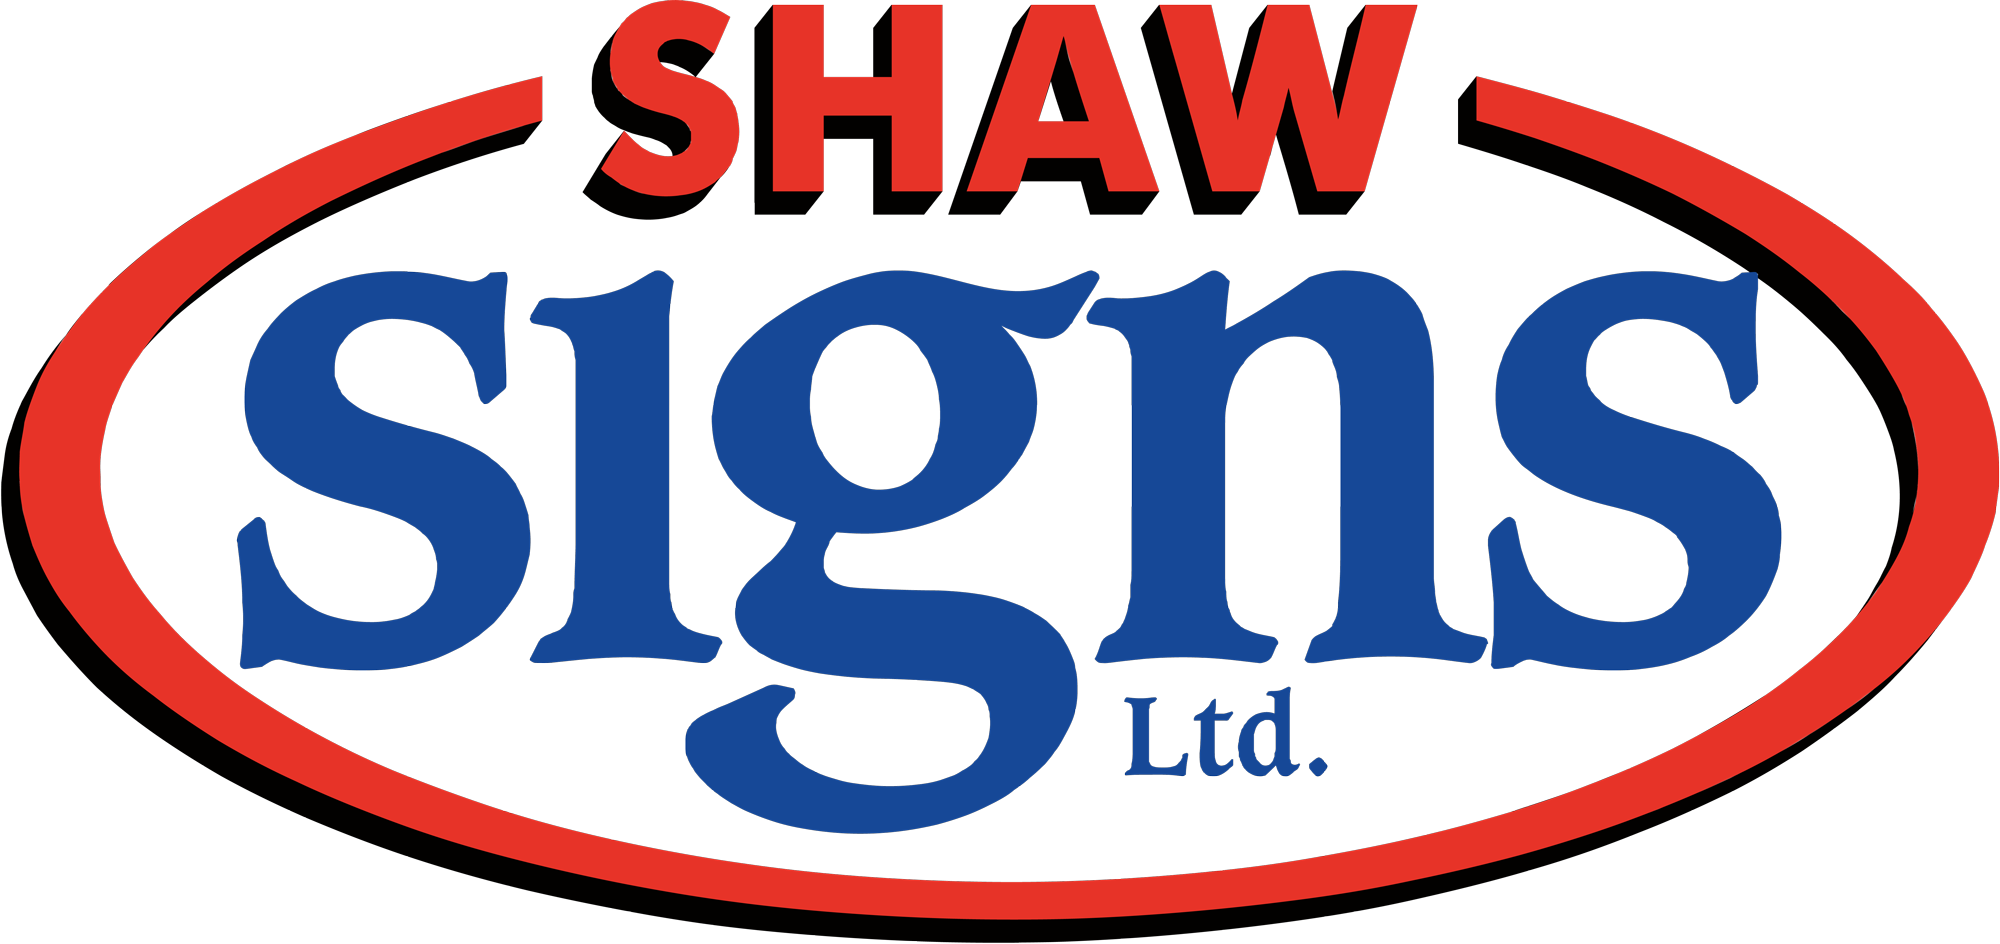 Shaw Signs Ltd